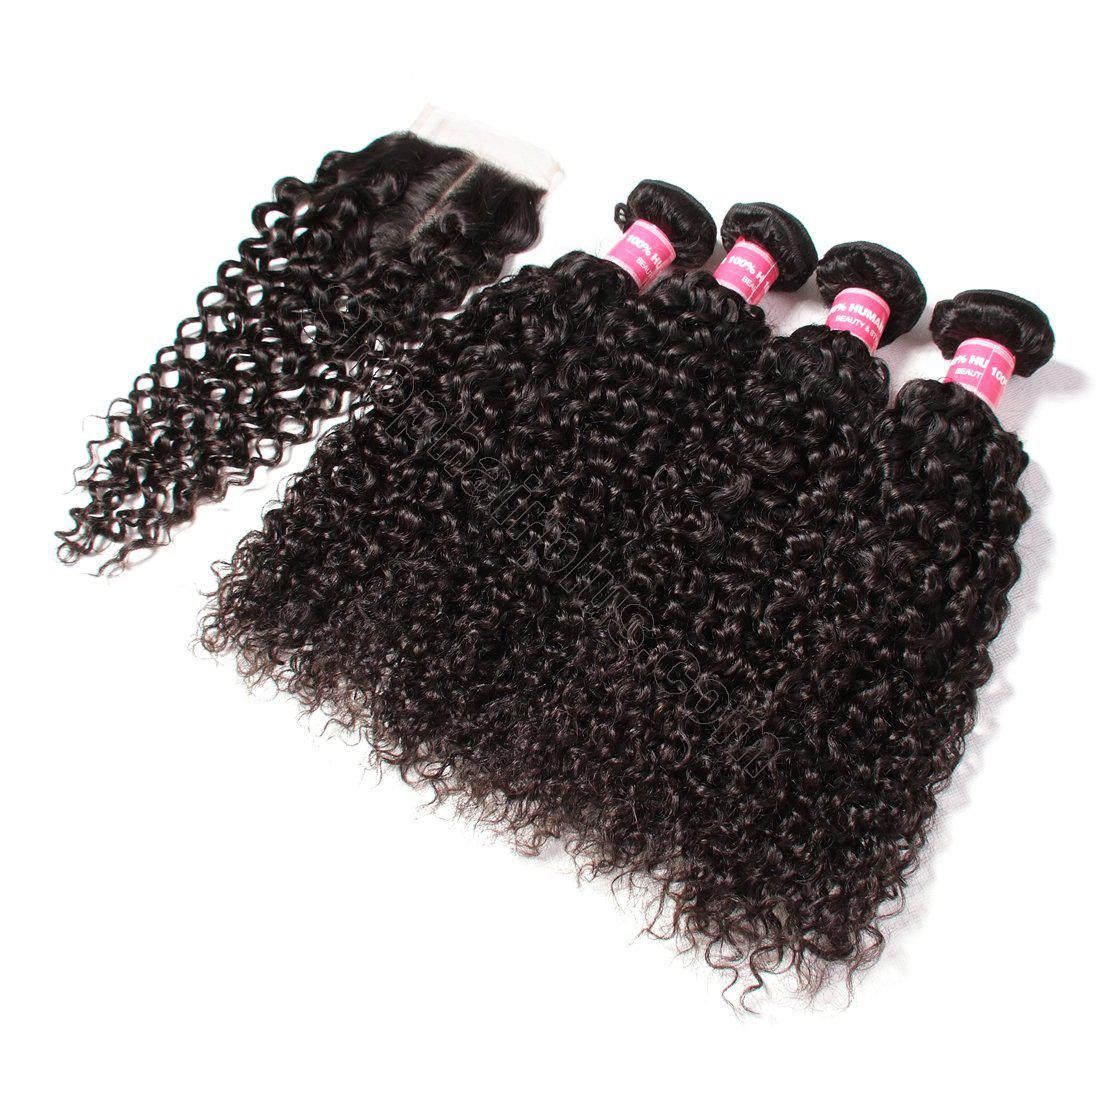 Indian Virgin Curly Hair 4 Bundles with 4*4 Lace Closure-Klaiyi Hair 2